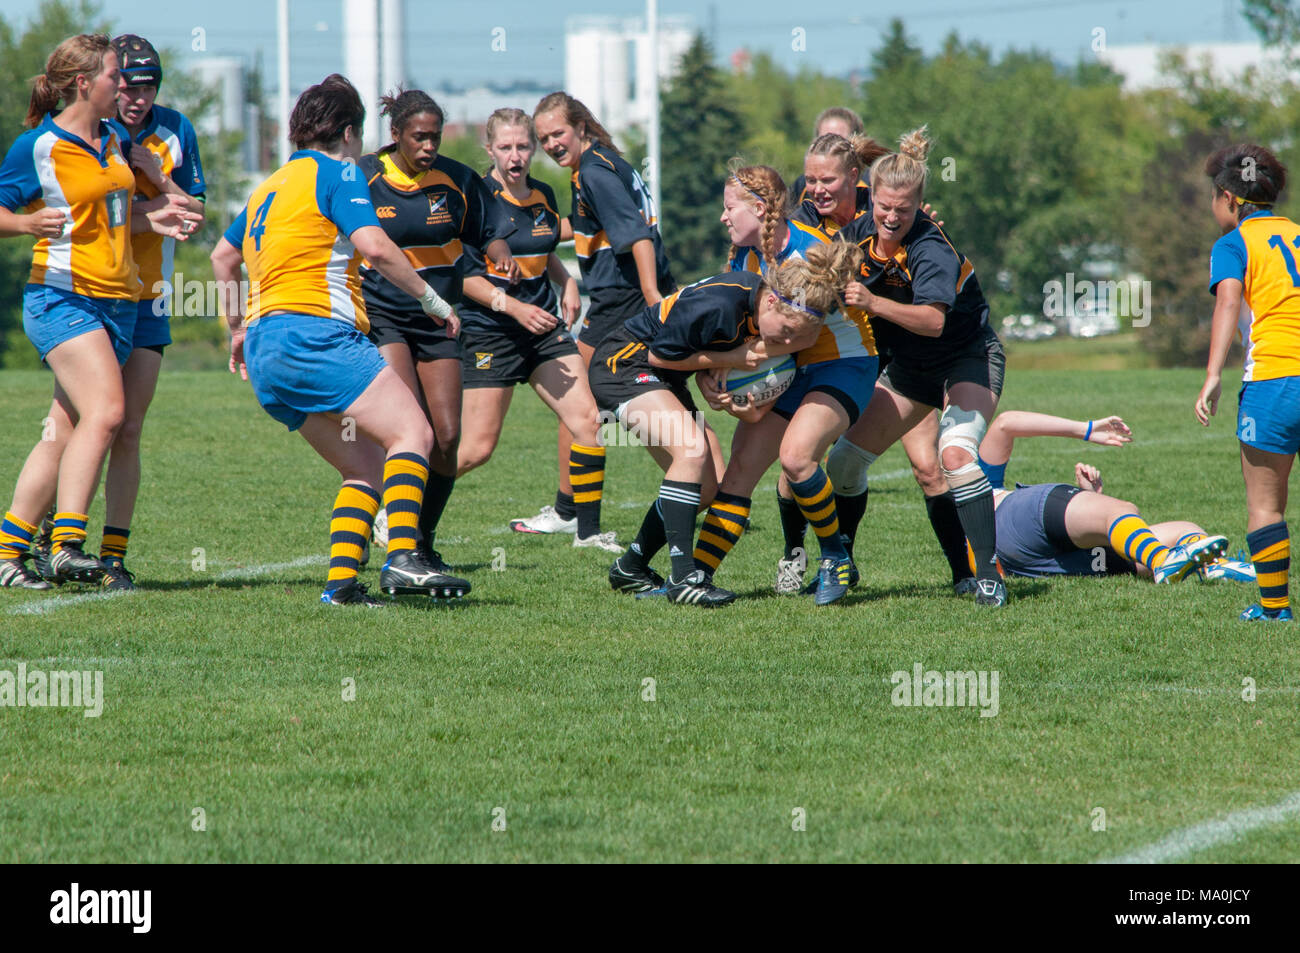 Players fight for the ball in the Alberta Women's Premiership Championship Match between the Calgary Hornets and the Edmonton Lep-Tigers at the Calgar - Stock Image